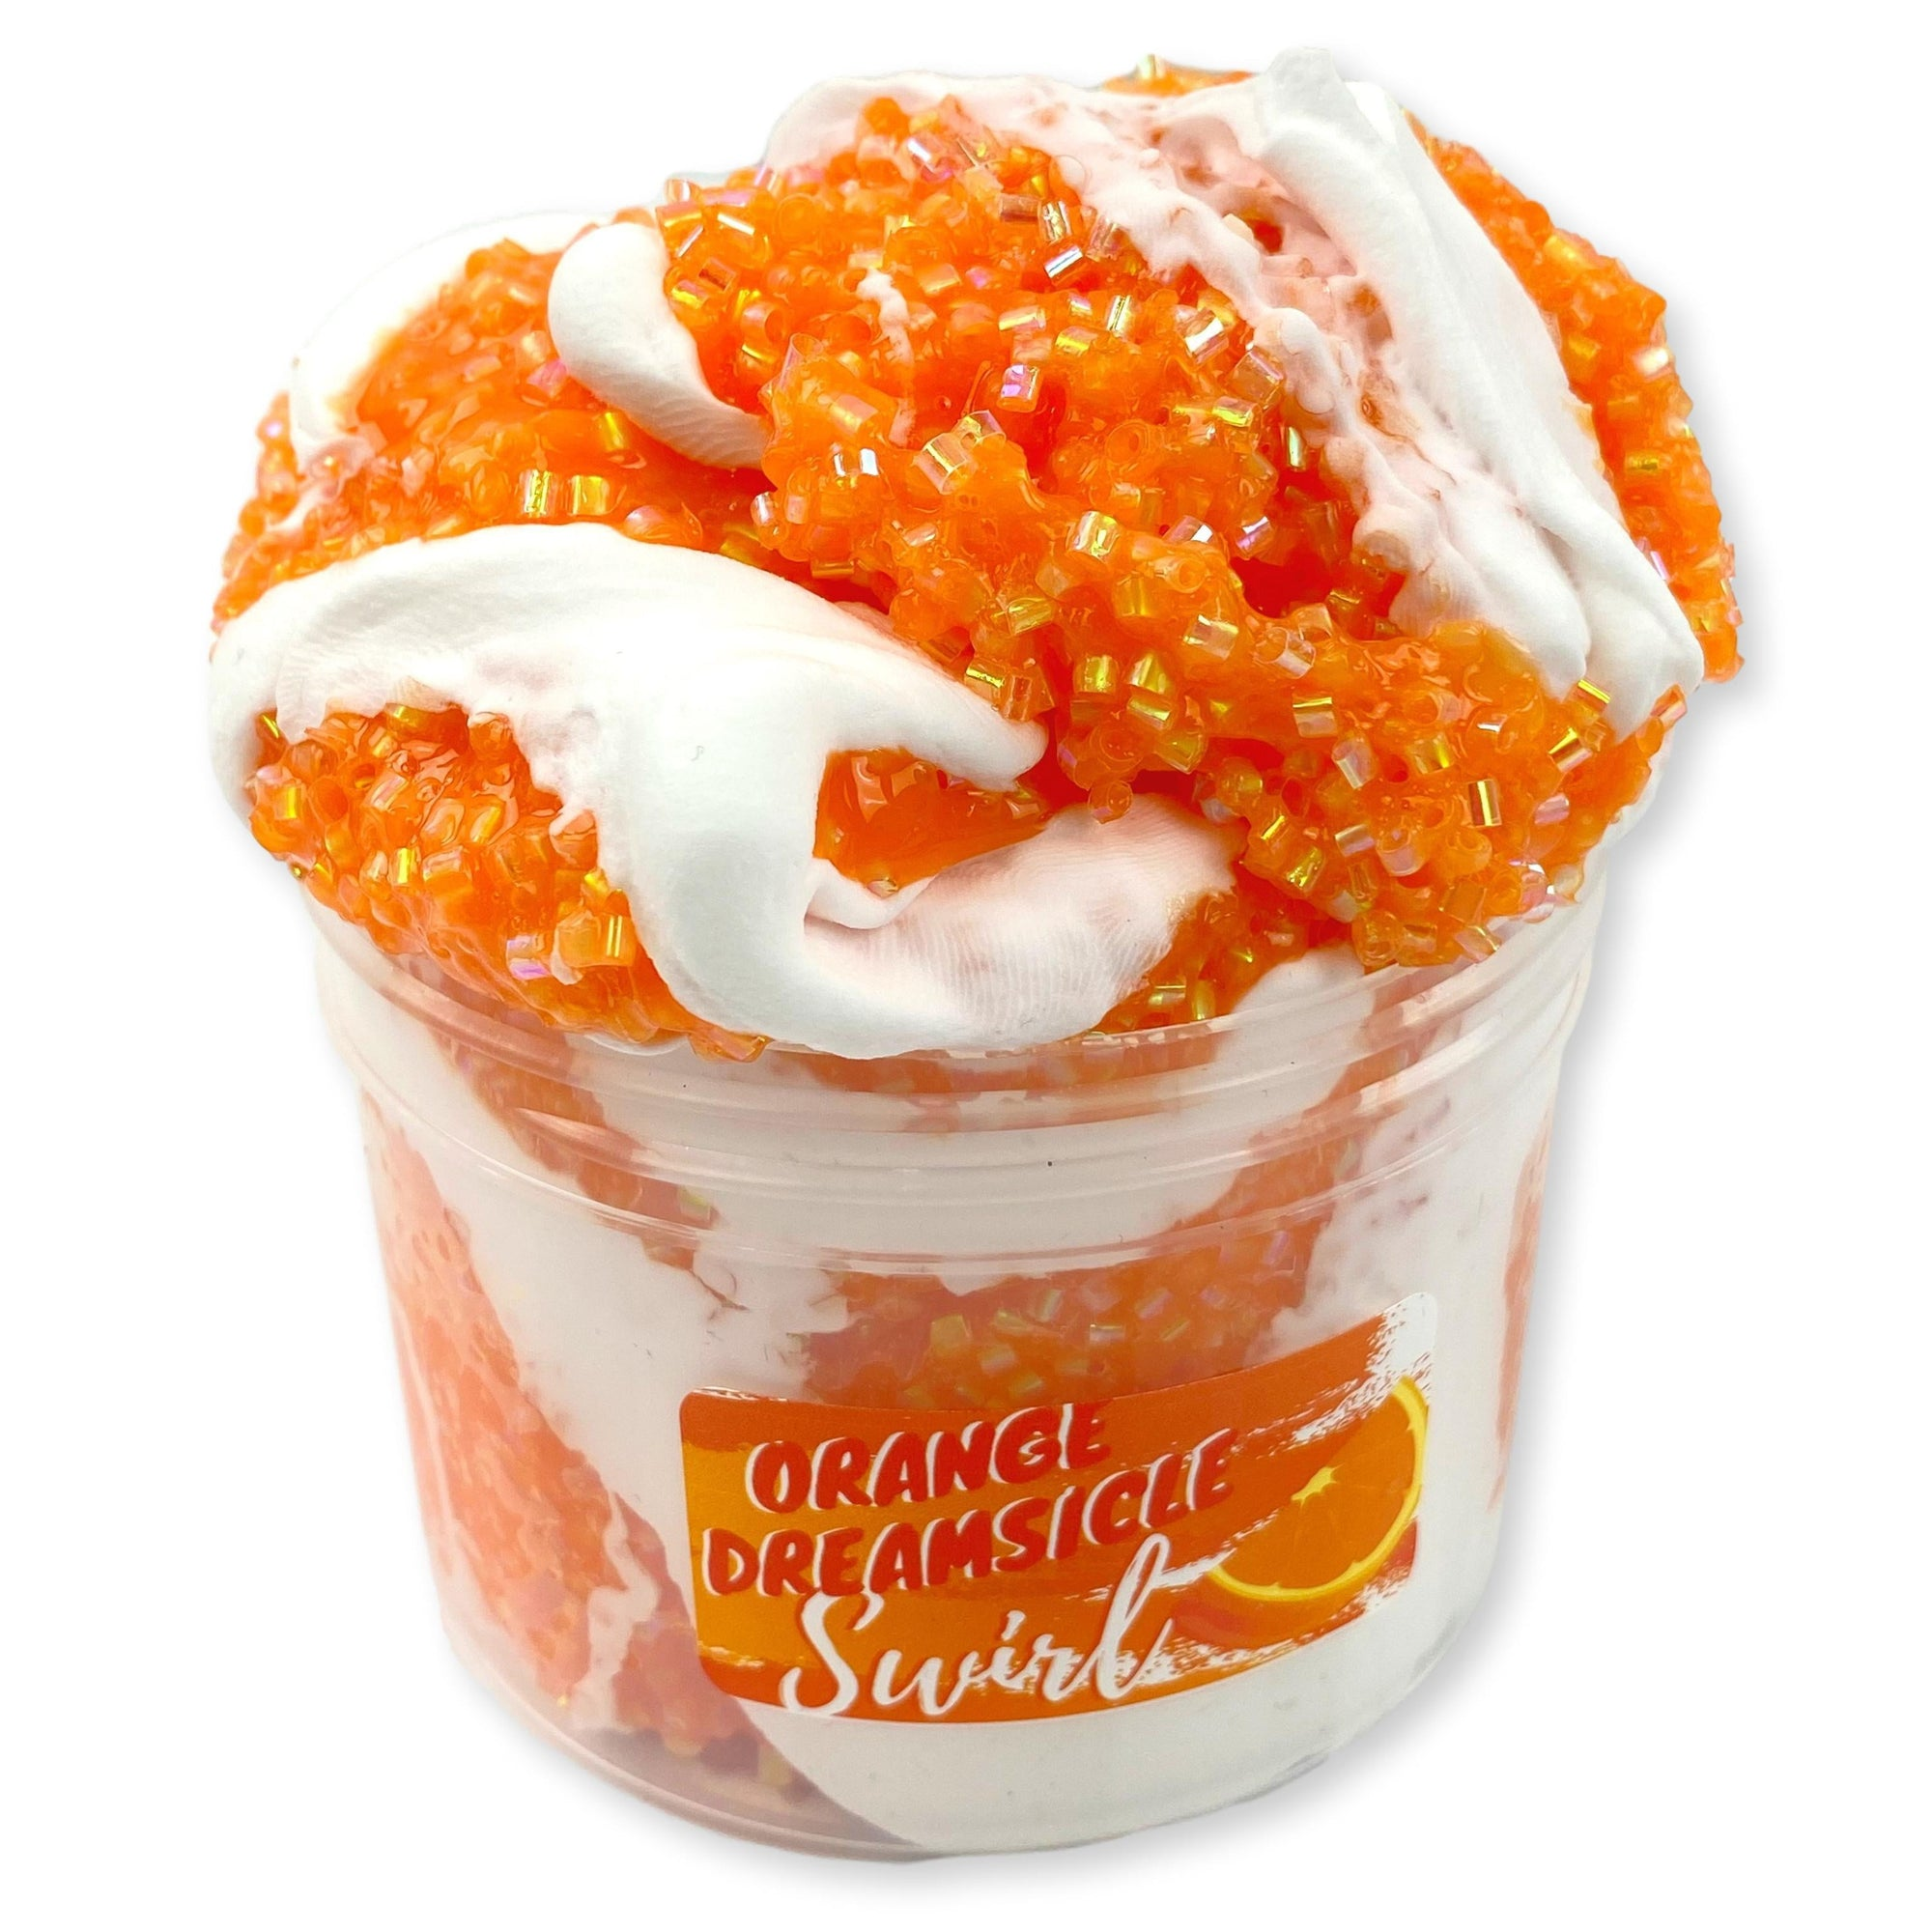 Orange Dream-sickle Swirl Bingsu Slime - Shop Slime - Dope Slimes